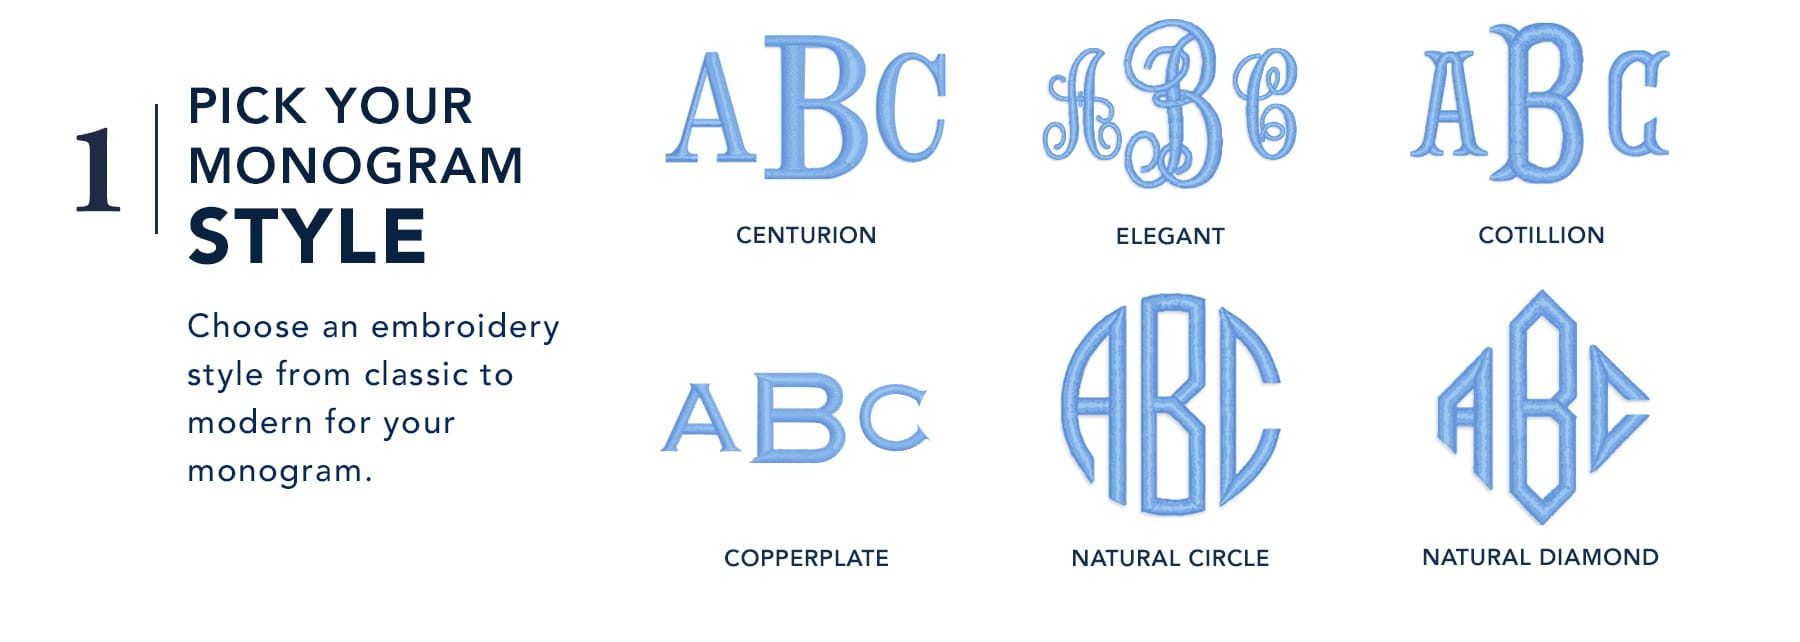 1. Pick your monogram style - Choose an embroidery style from classic to modern for your monogram: Centurion, Elegant, Cotillion, Copperplate, Natural Circle, or Natural Diamond.